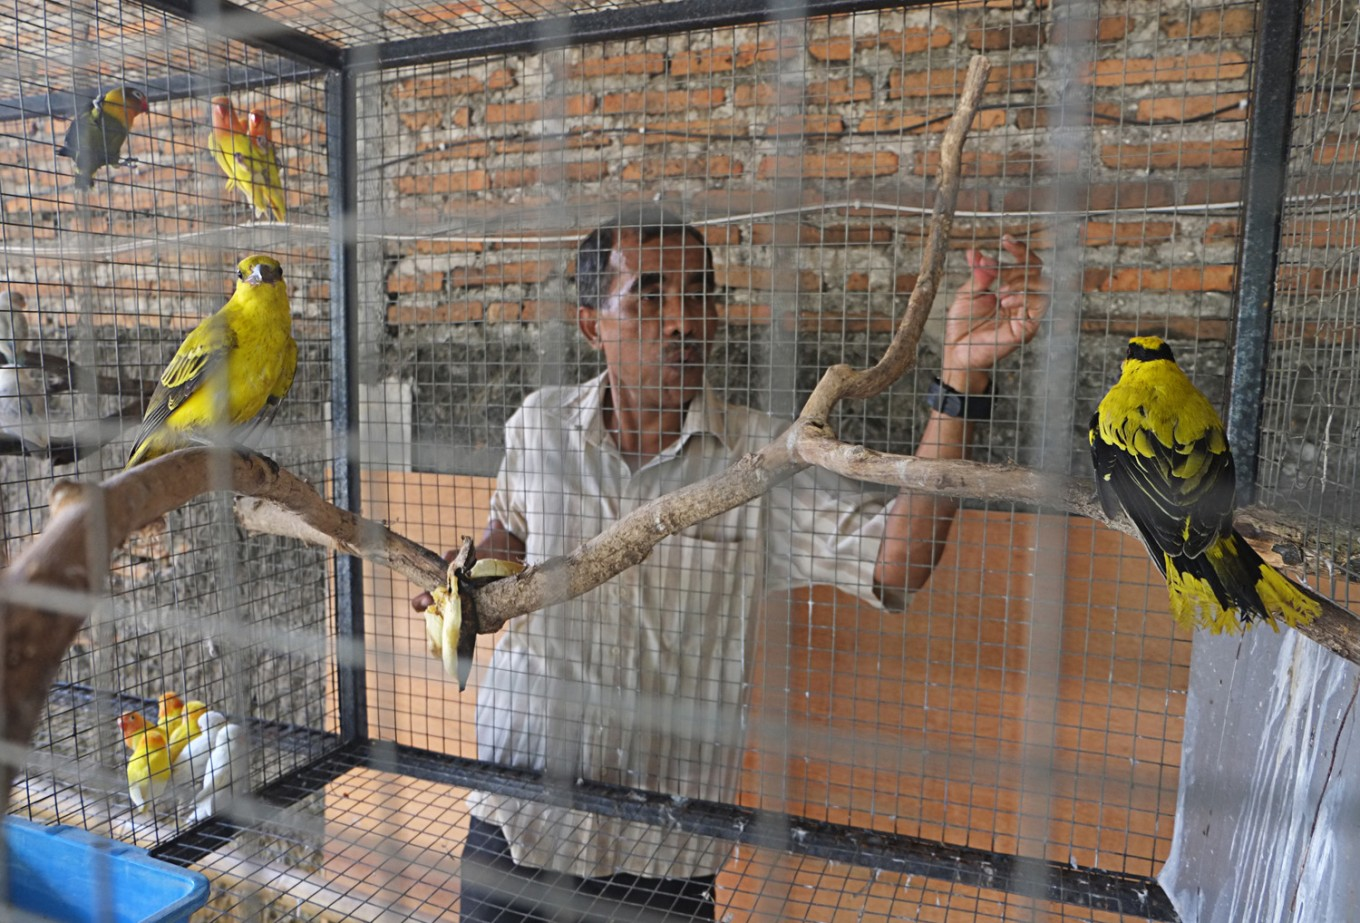 Hundreds of illegal birds confiscated at Surakarta airport